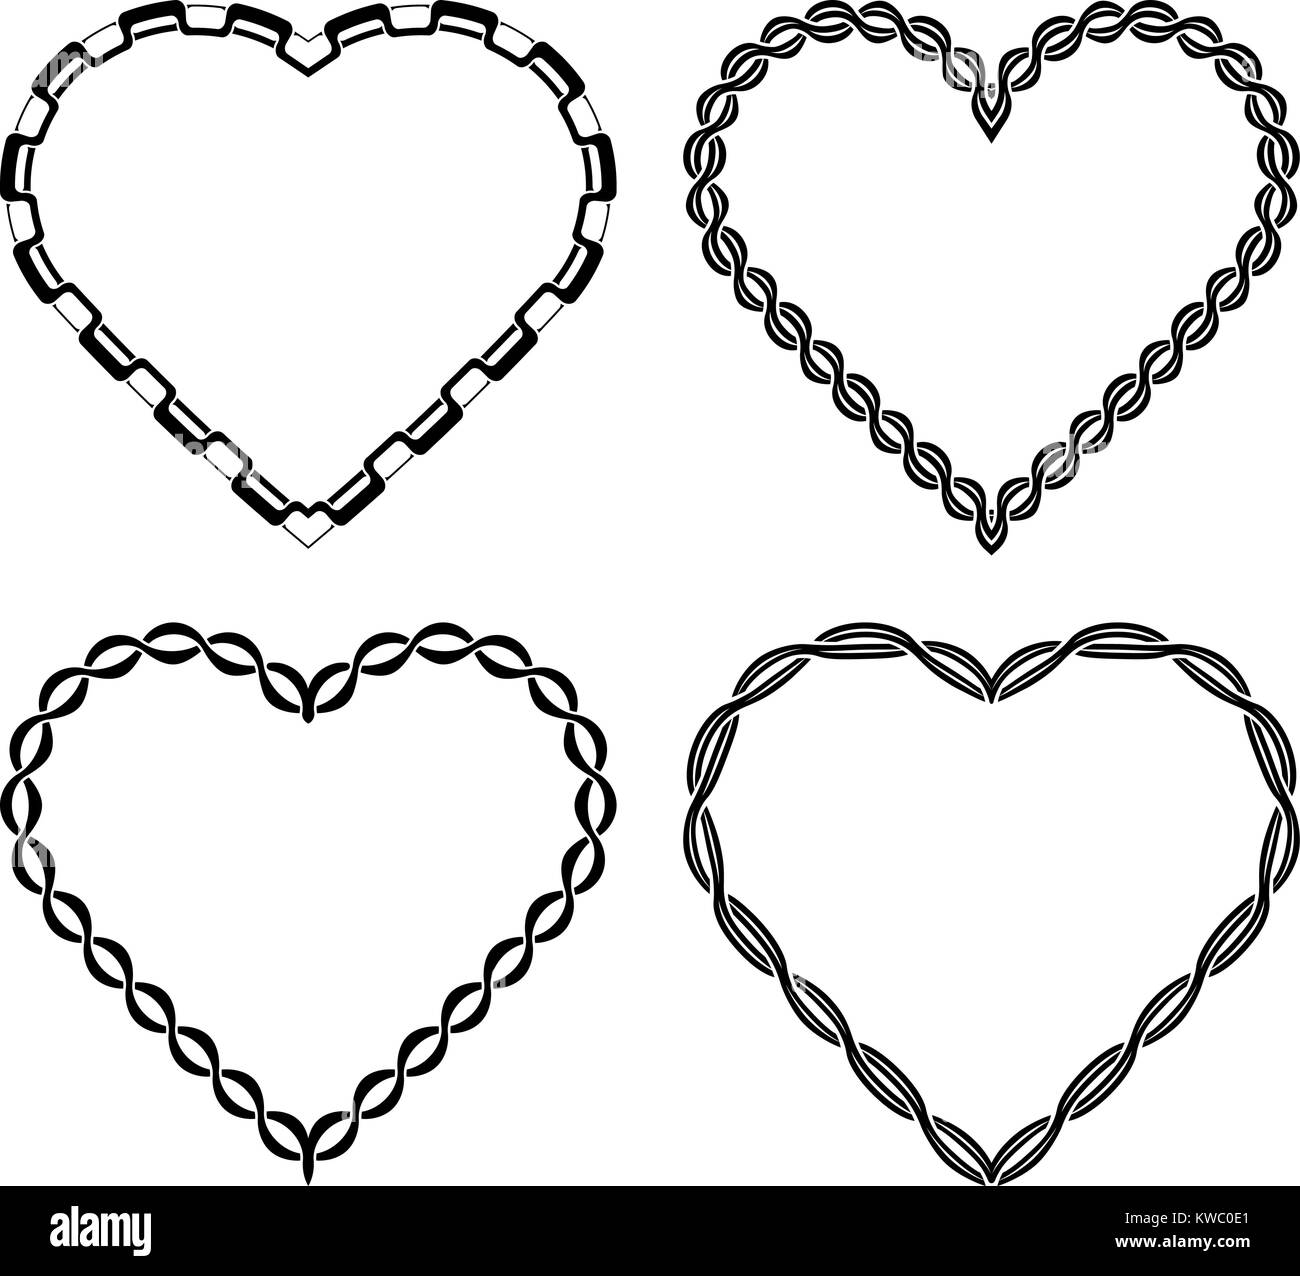 Set of 4 rich decorated ornate heart shaped frames for your design ...